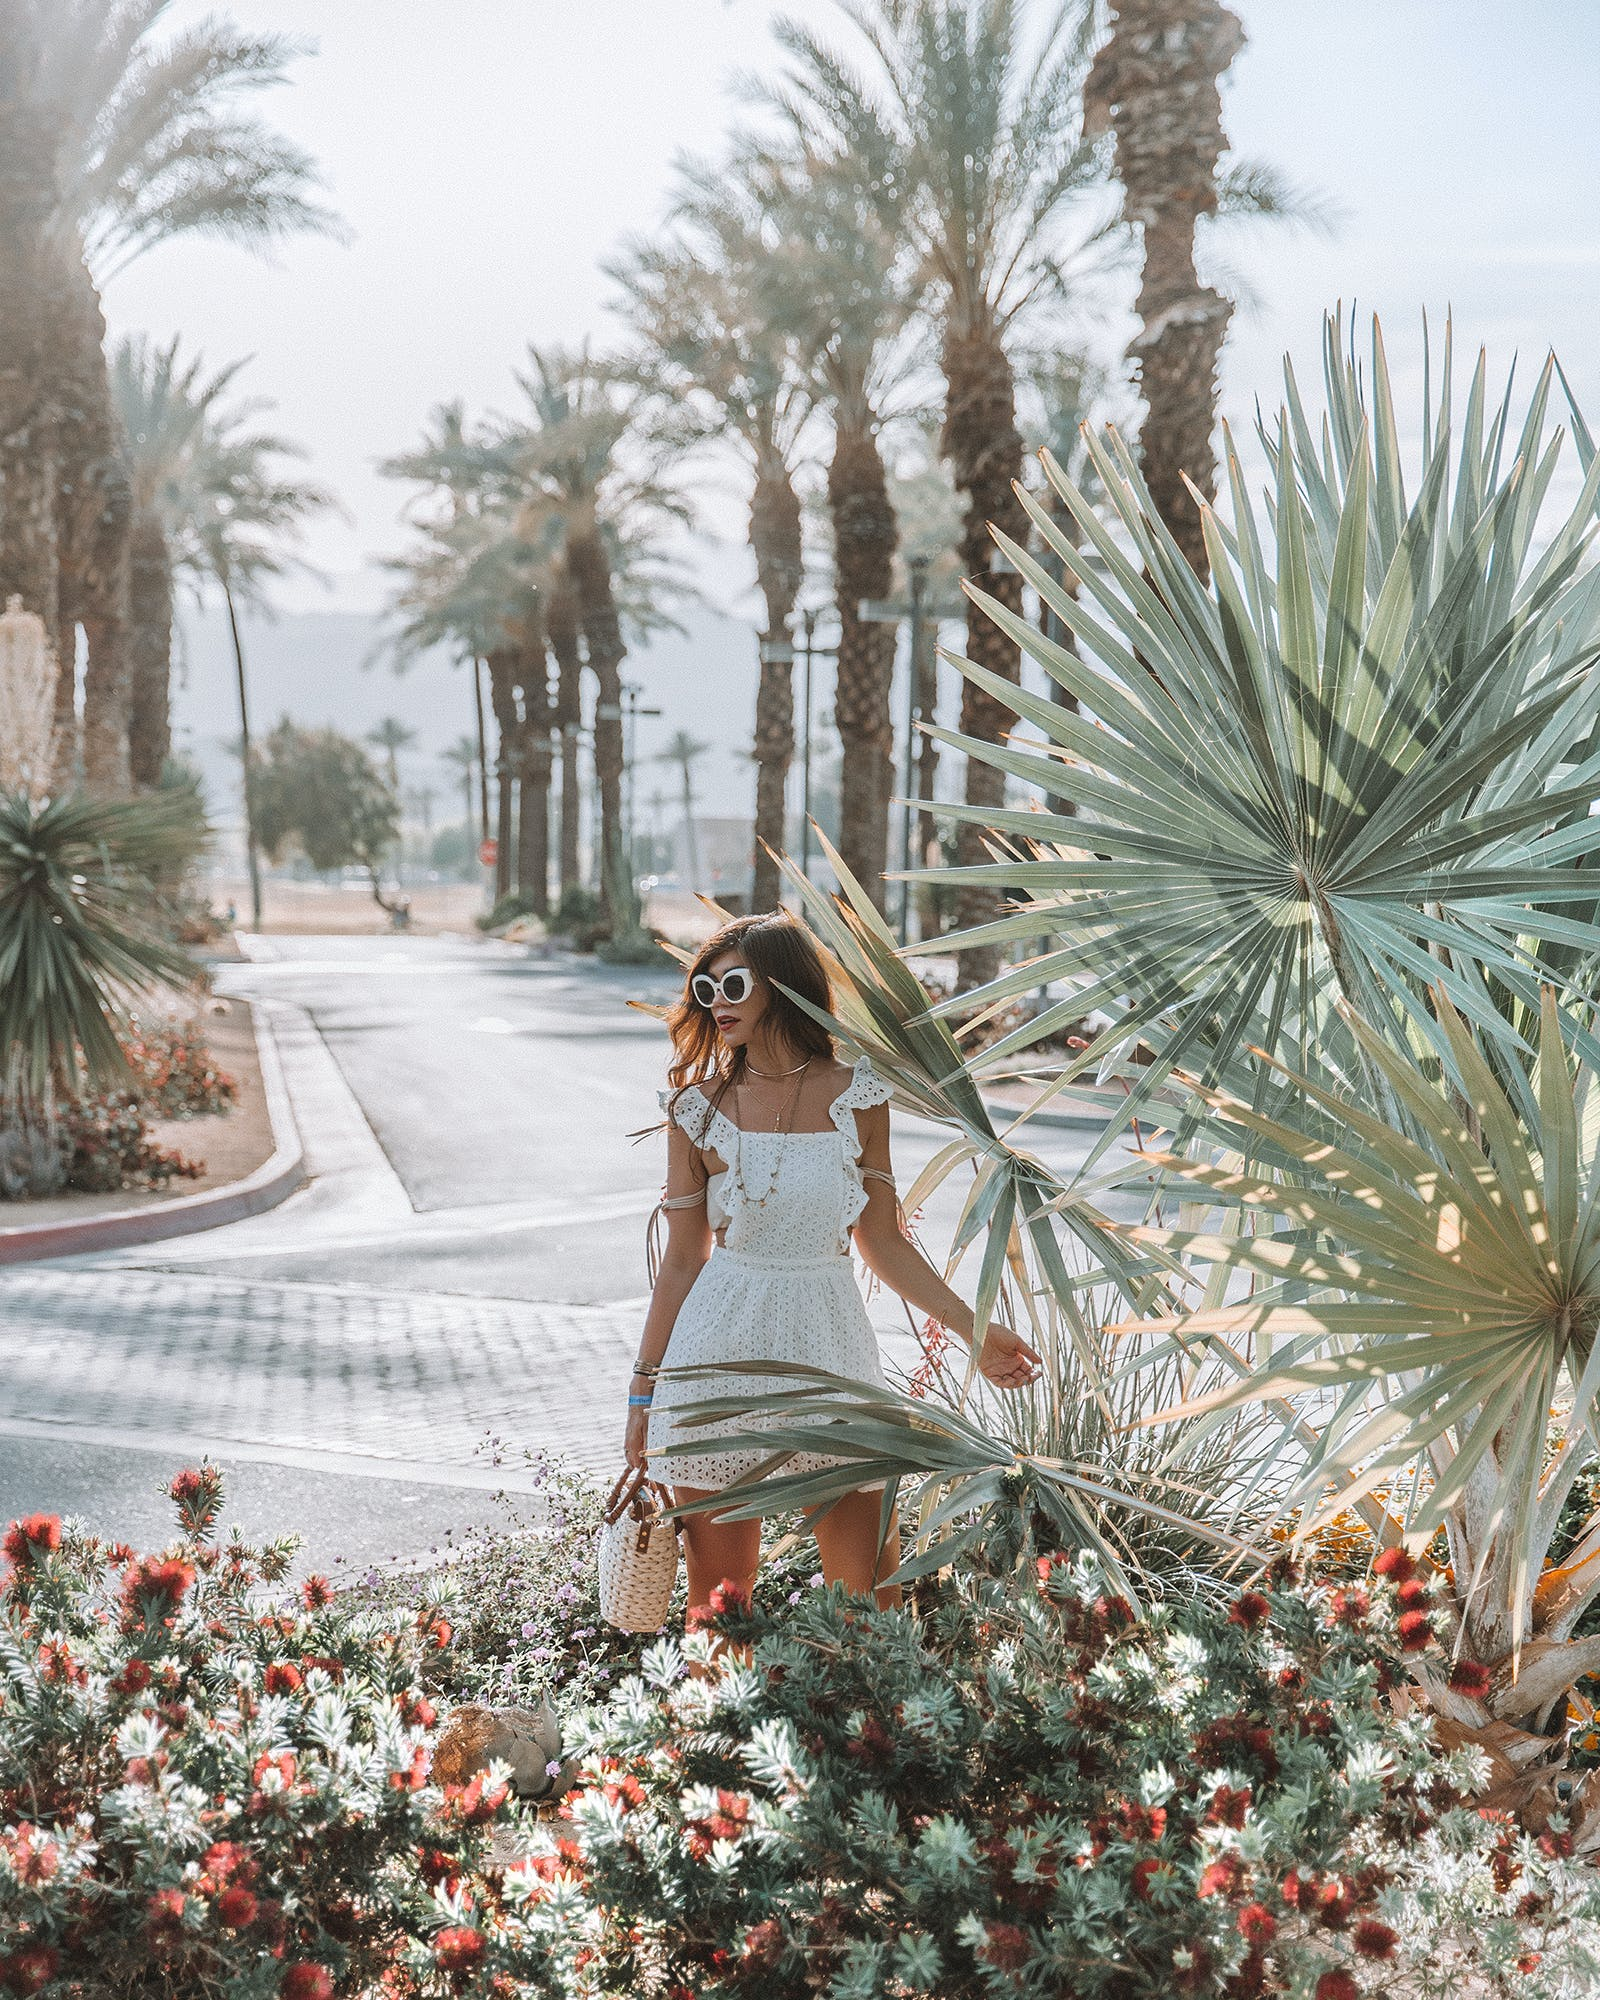 Exploring The Palm Springs Desert Festival Fashion With Revolve